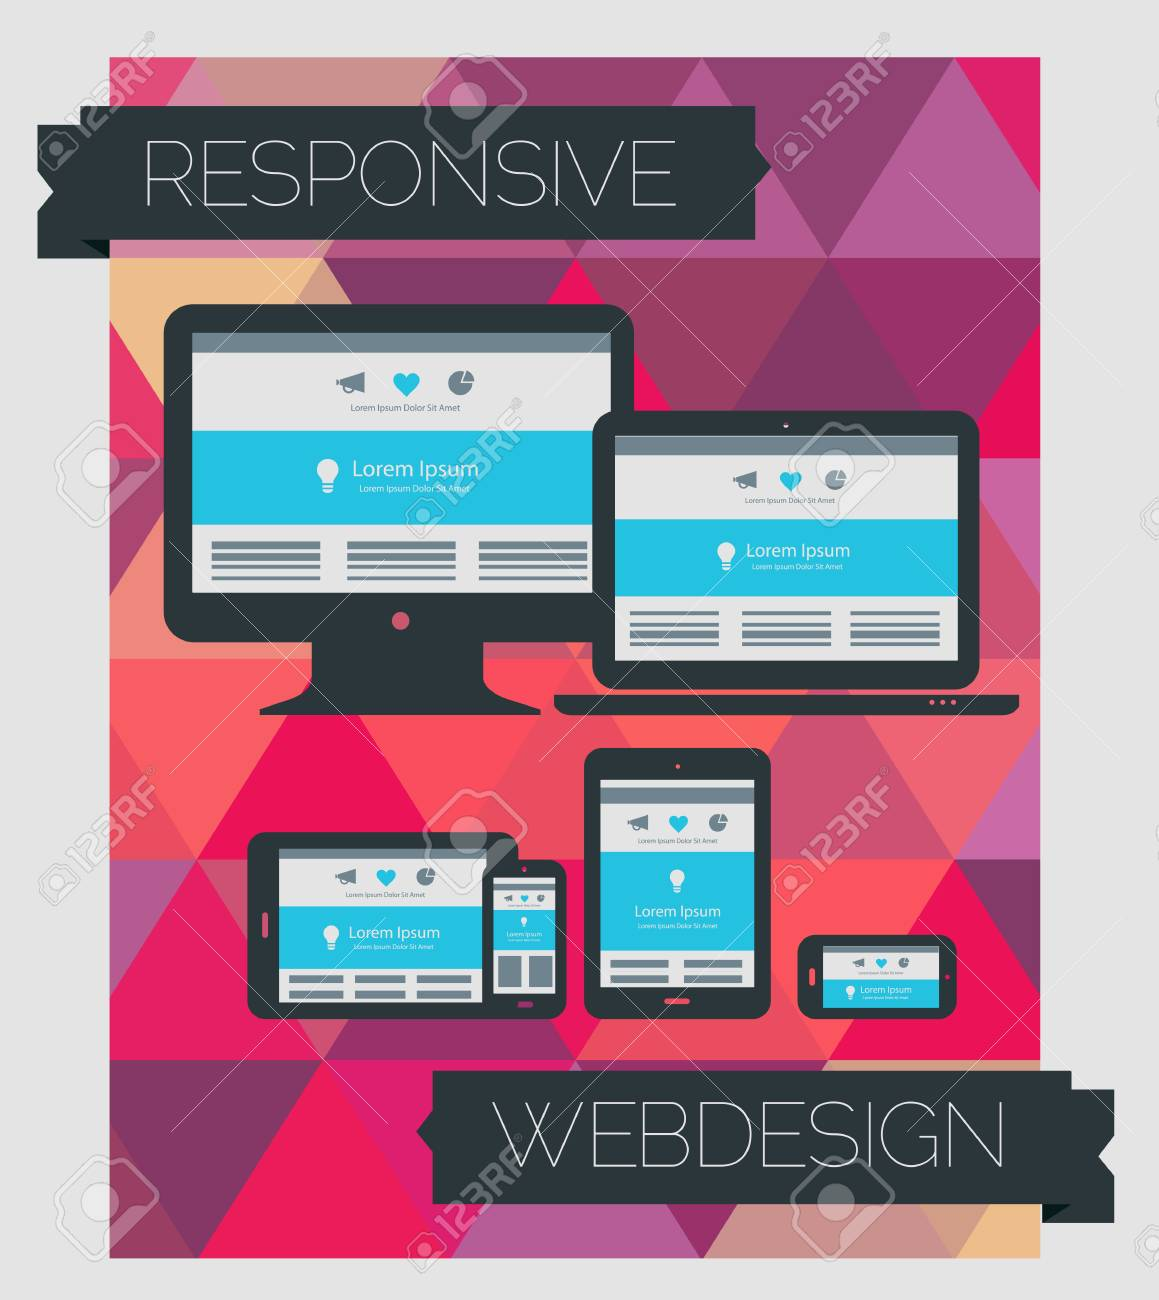 Responsive Webdesign Technology Page Design Template On Geometrical